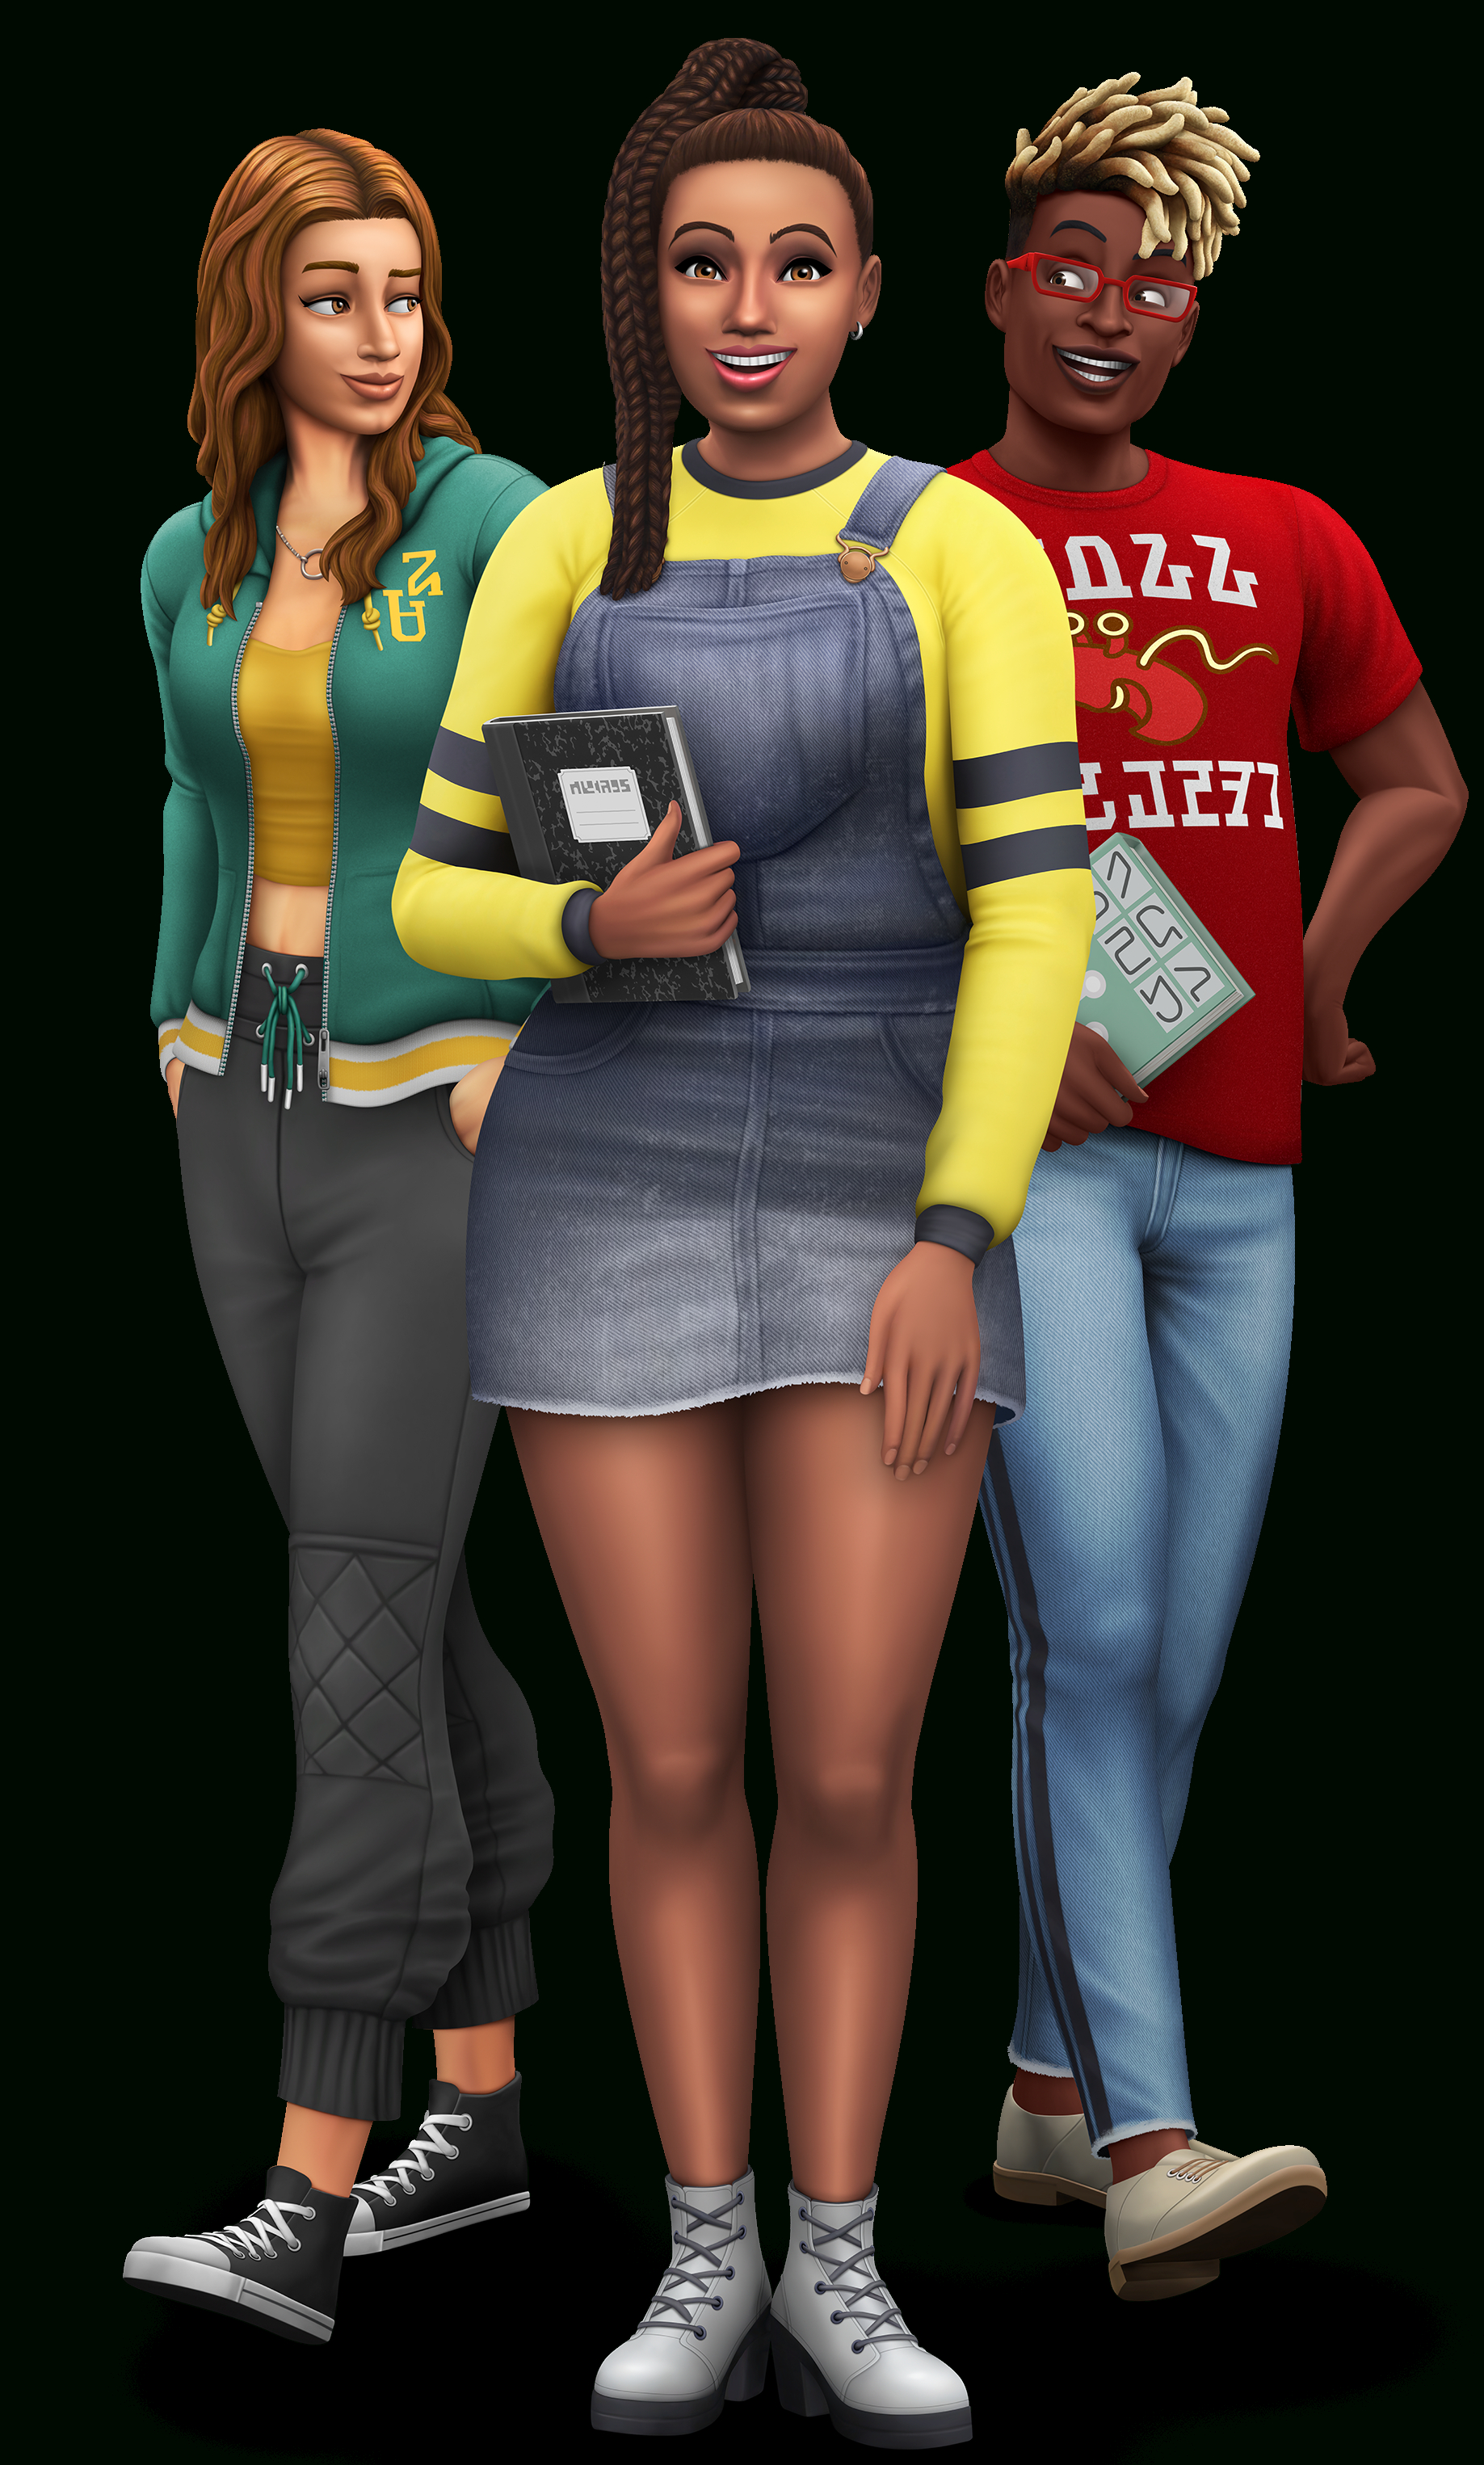 The Sims 4 Discover University: Official Logo, Box Art, Icon for Sims 4 Icons 2020